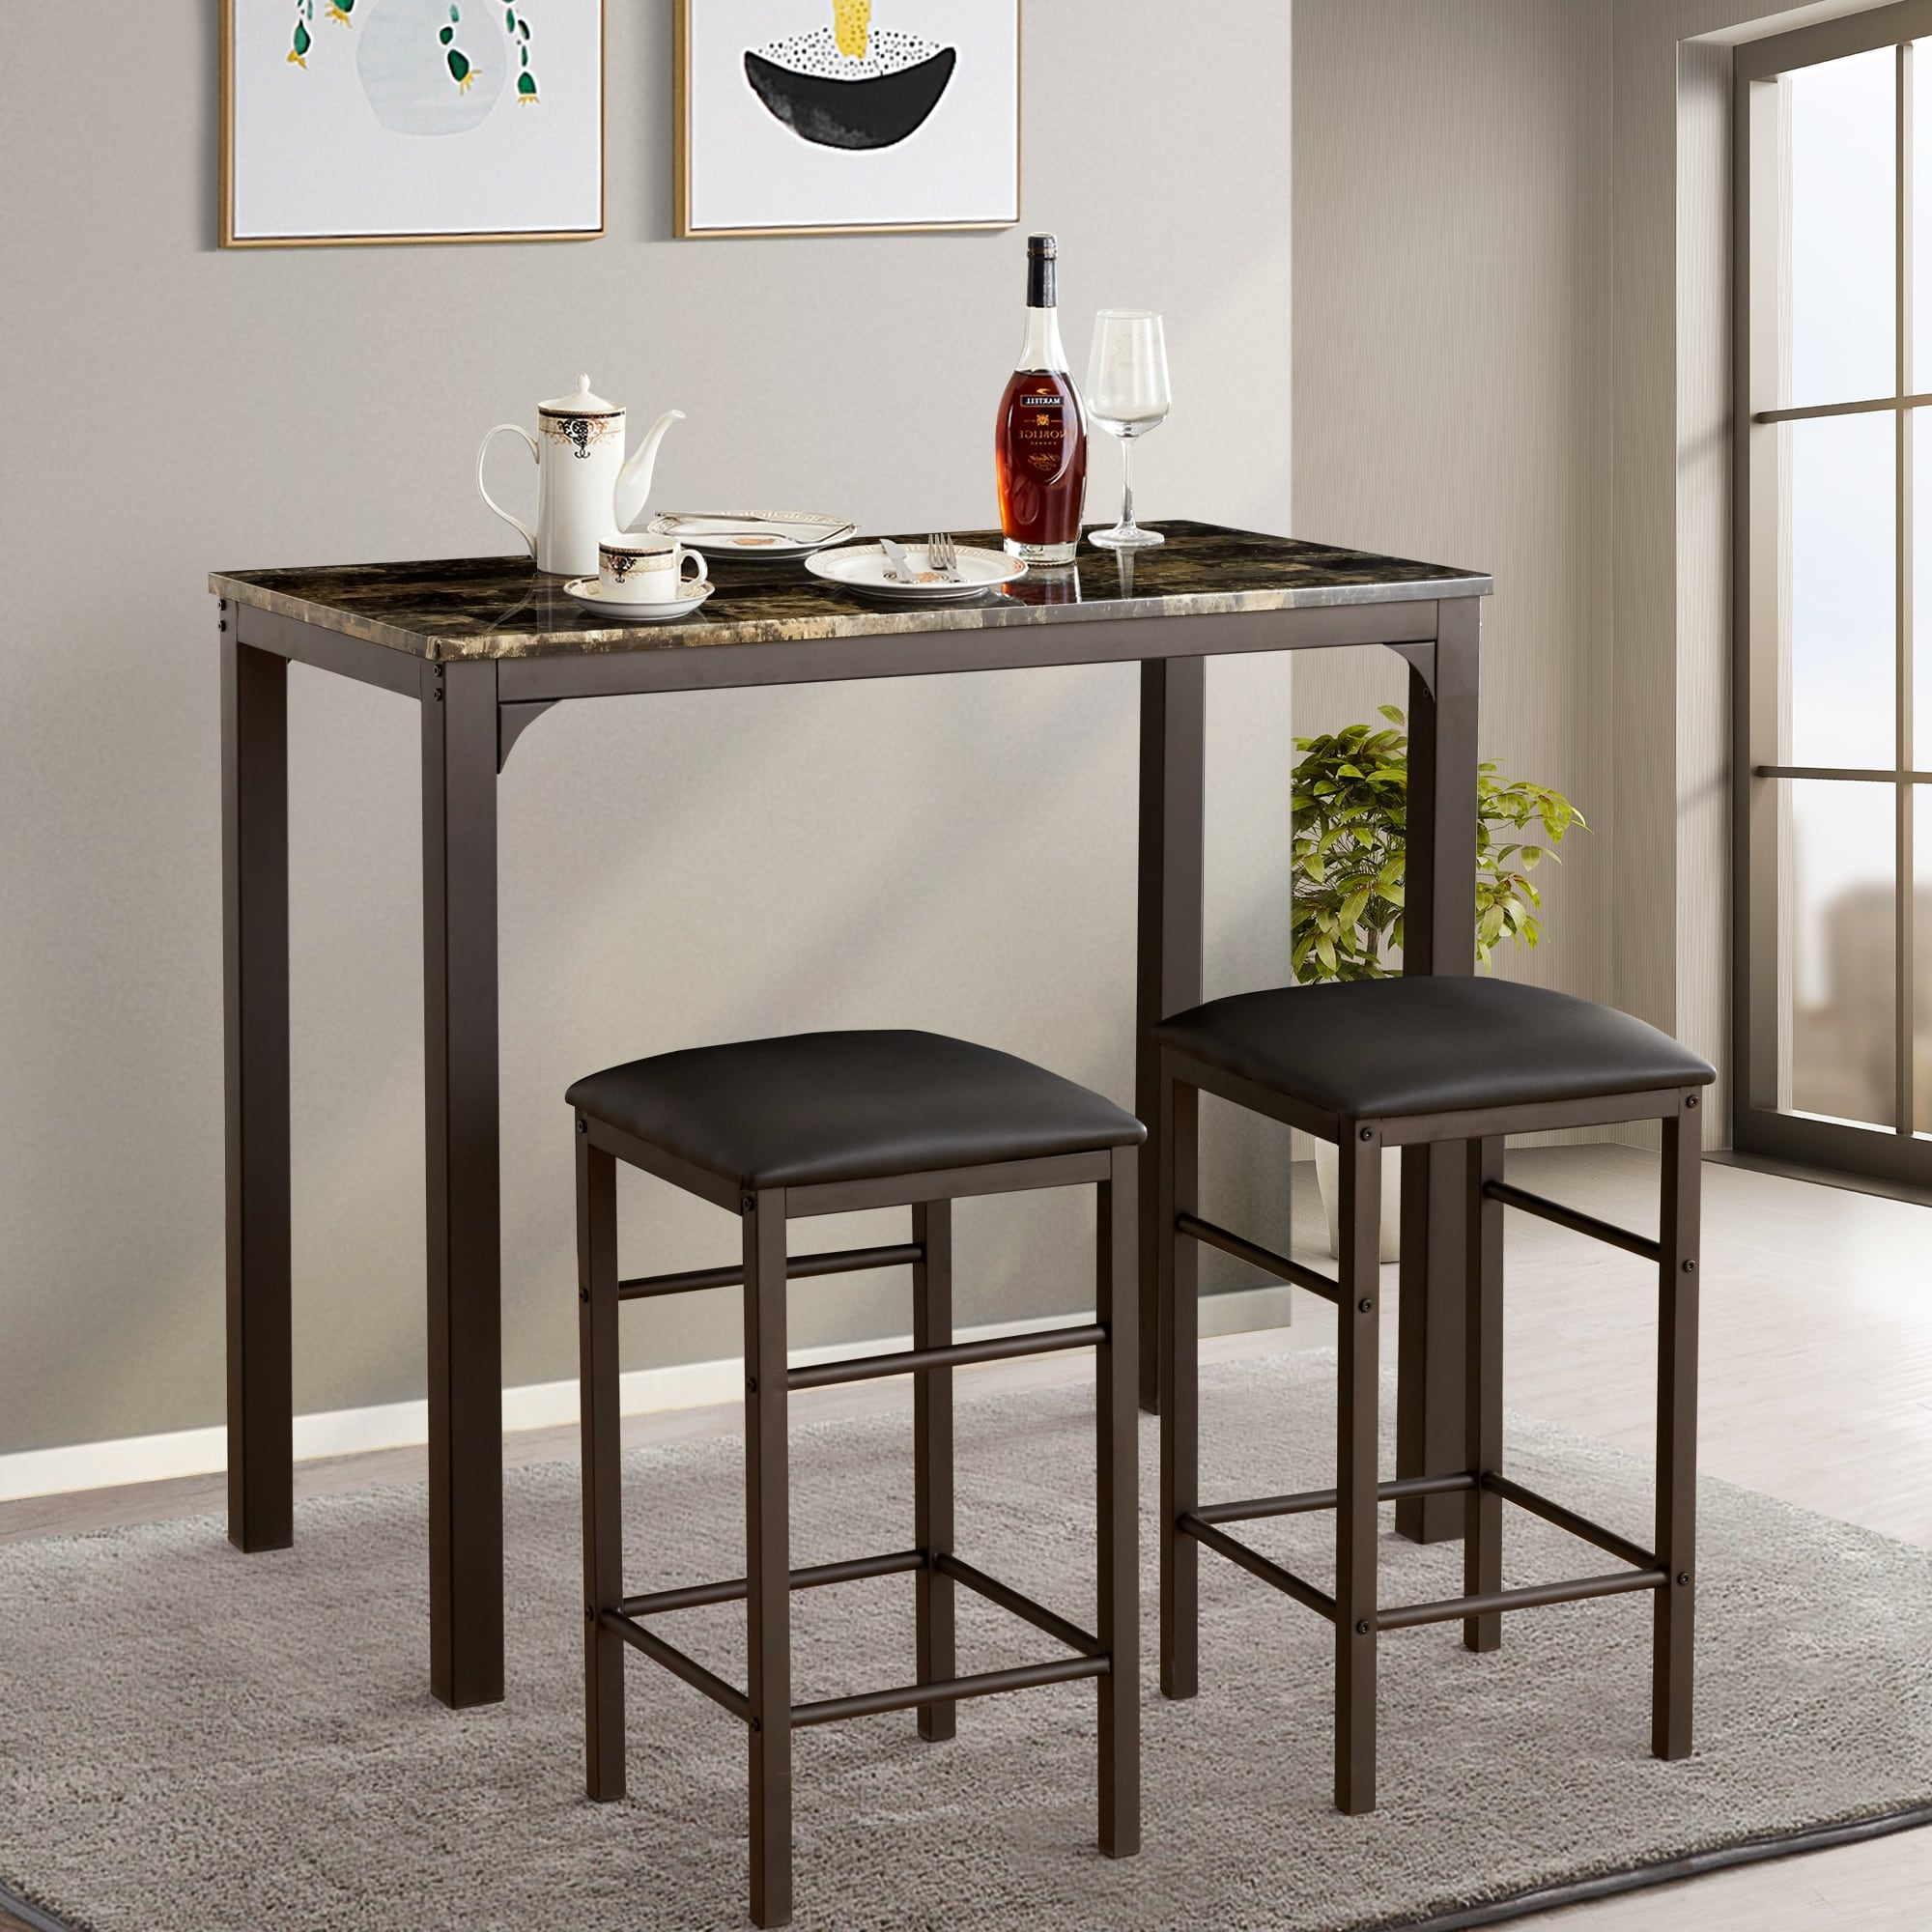 Vecelo home kitchen bar table sets counter dining table sets 3pcs